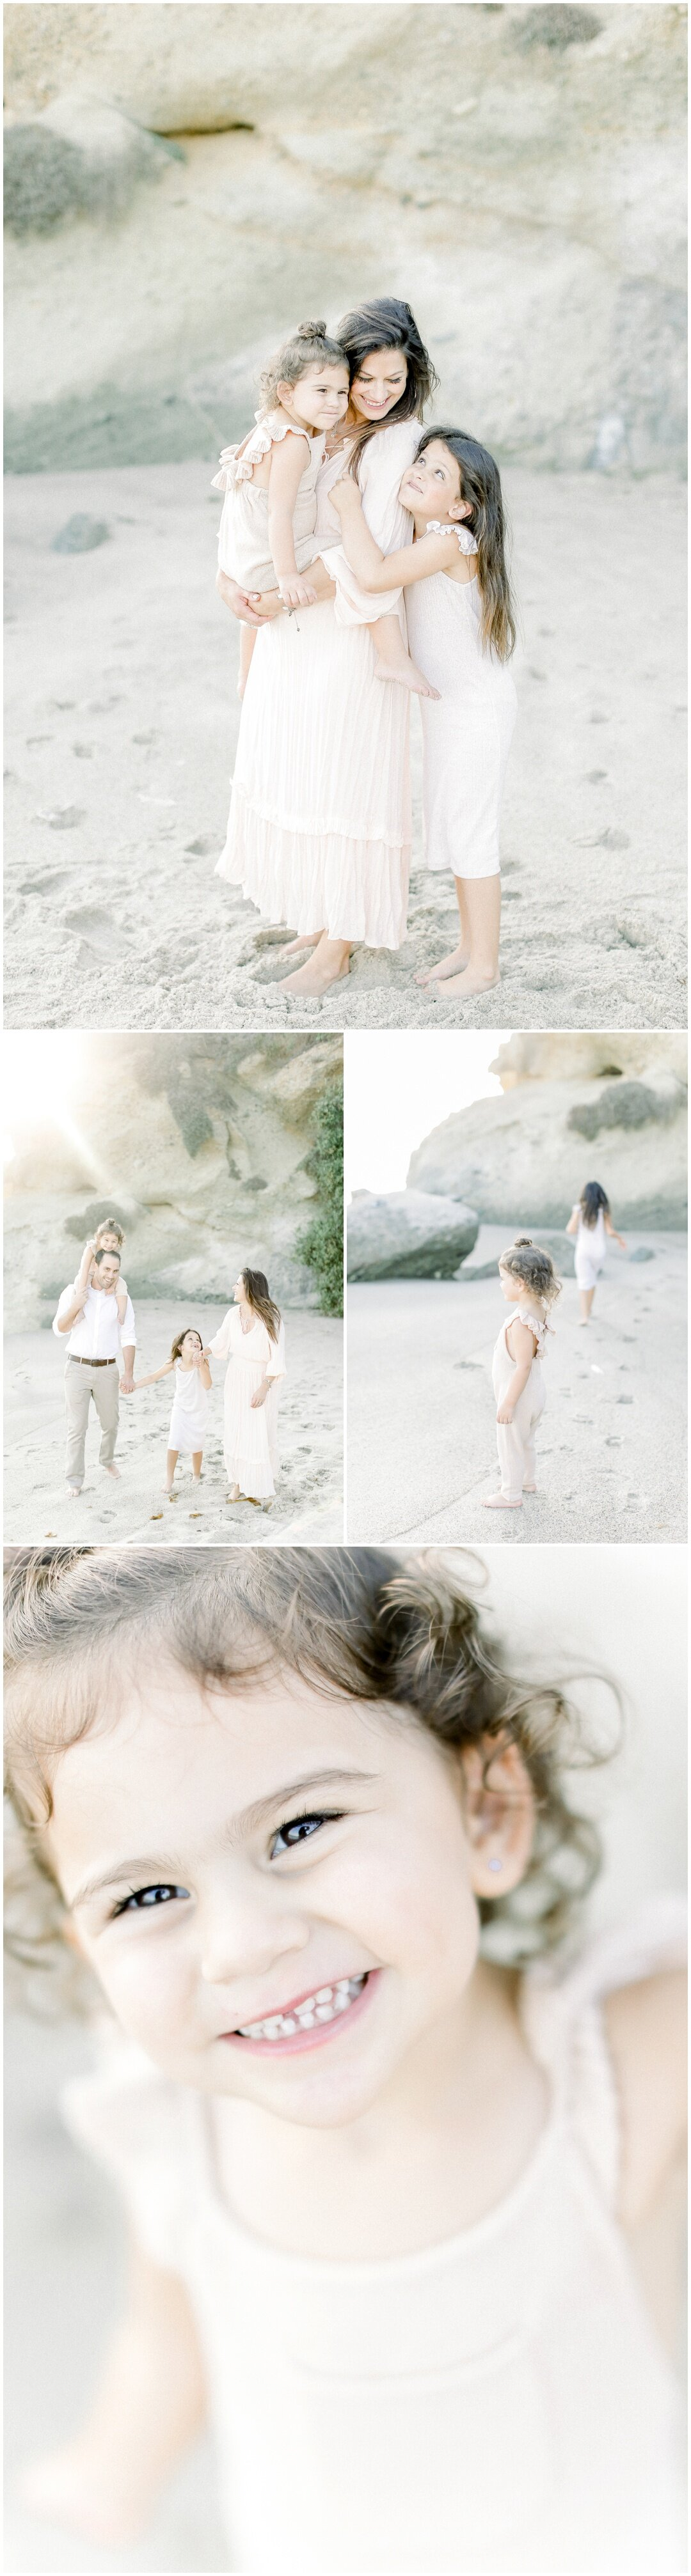 Newport+Beach+Newborn+Maternity+Photographer+Orange+County+Family+Photographer+Cori+Kleckner+Photography+Natalie+Hay+Loretz+Robert+Hay+The+Hay+Family_4447.jpg